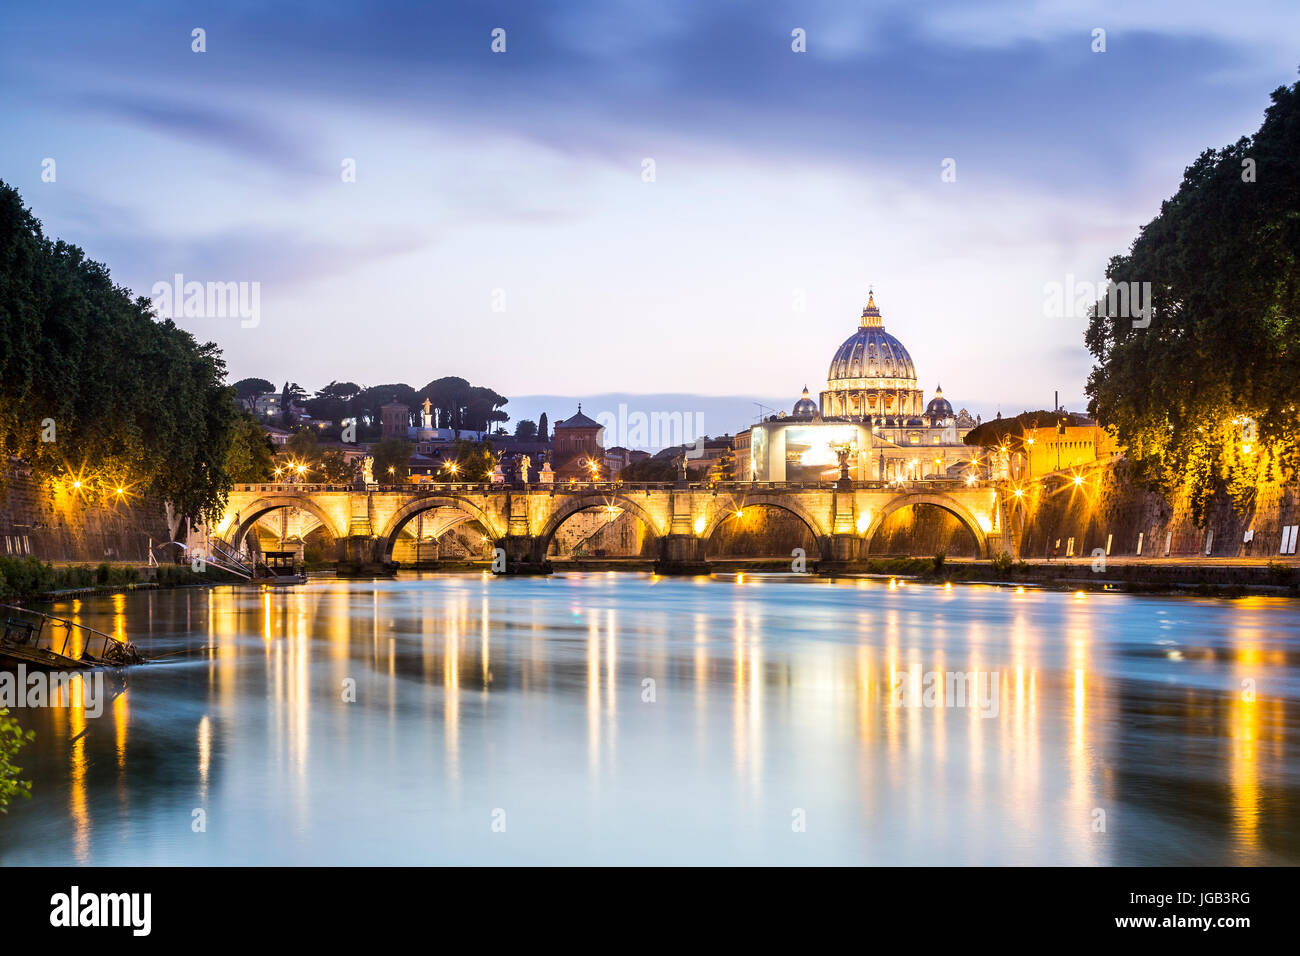 Saint Peter's Basilica and square in Vatican City, Rome, Italy - Stock Image